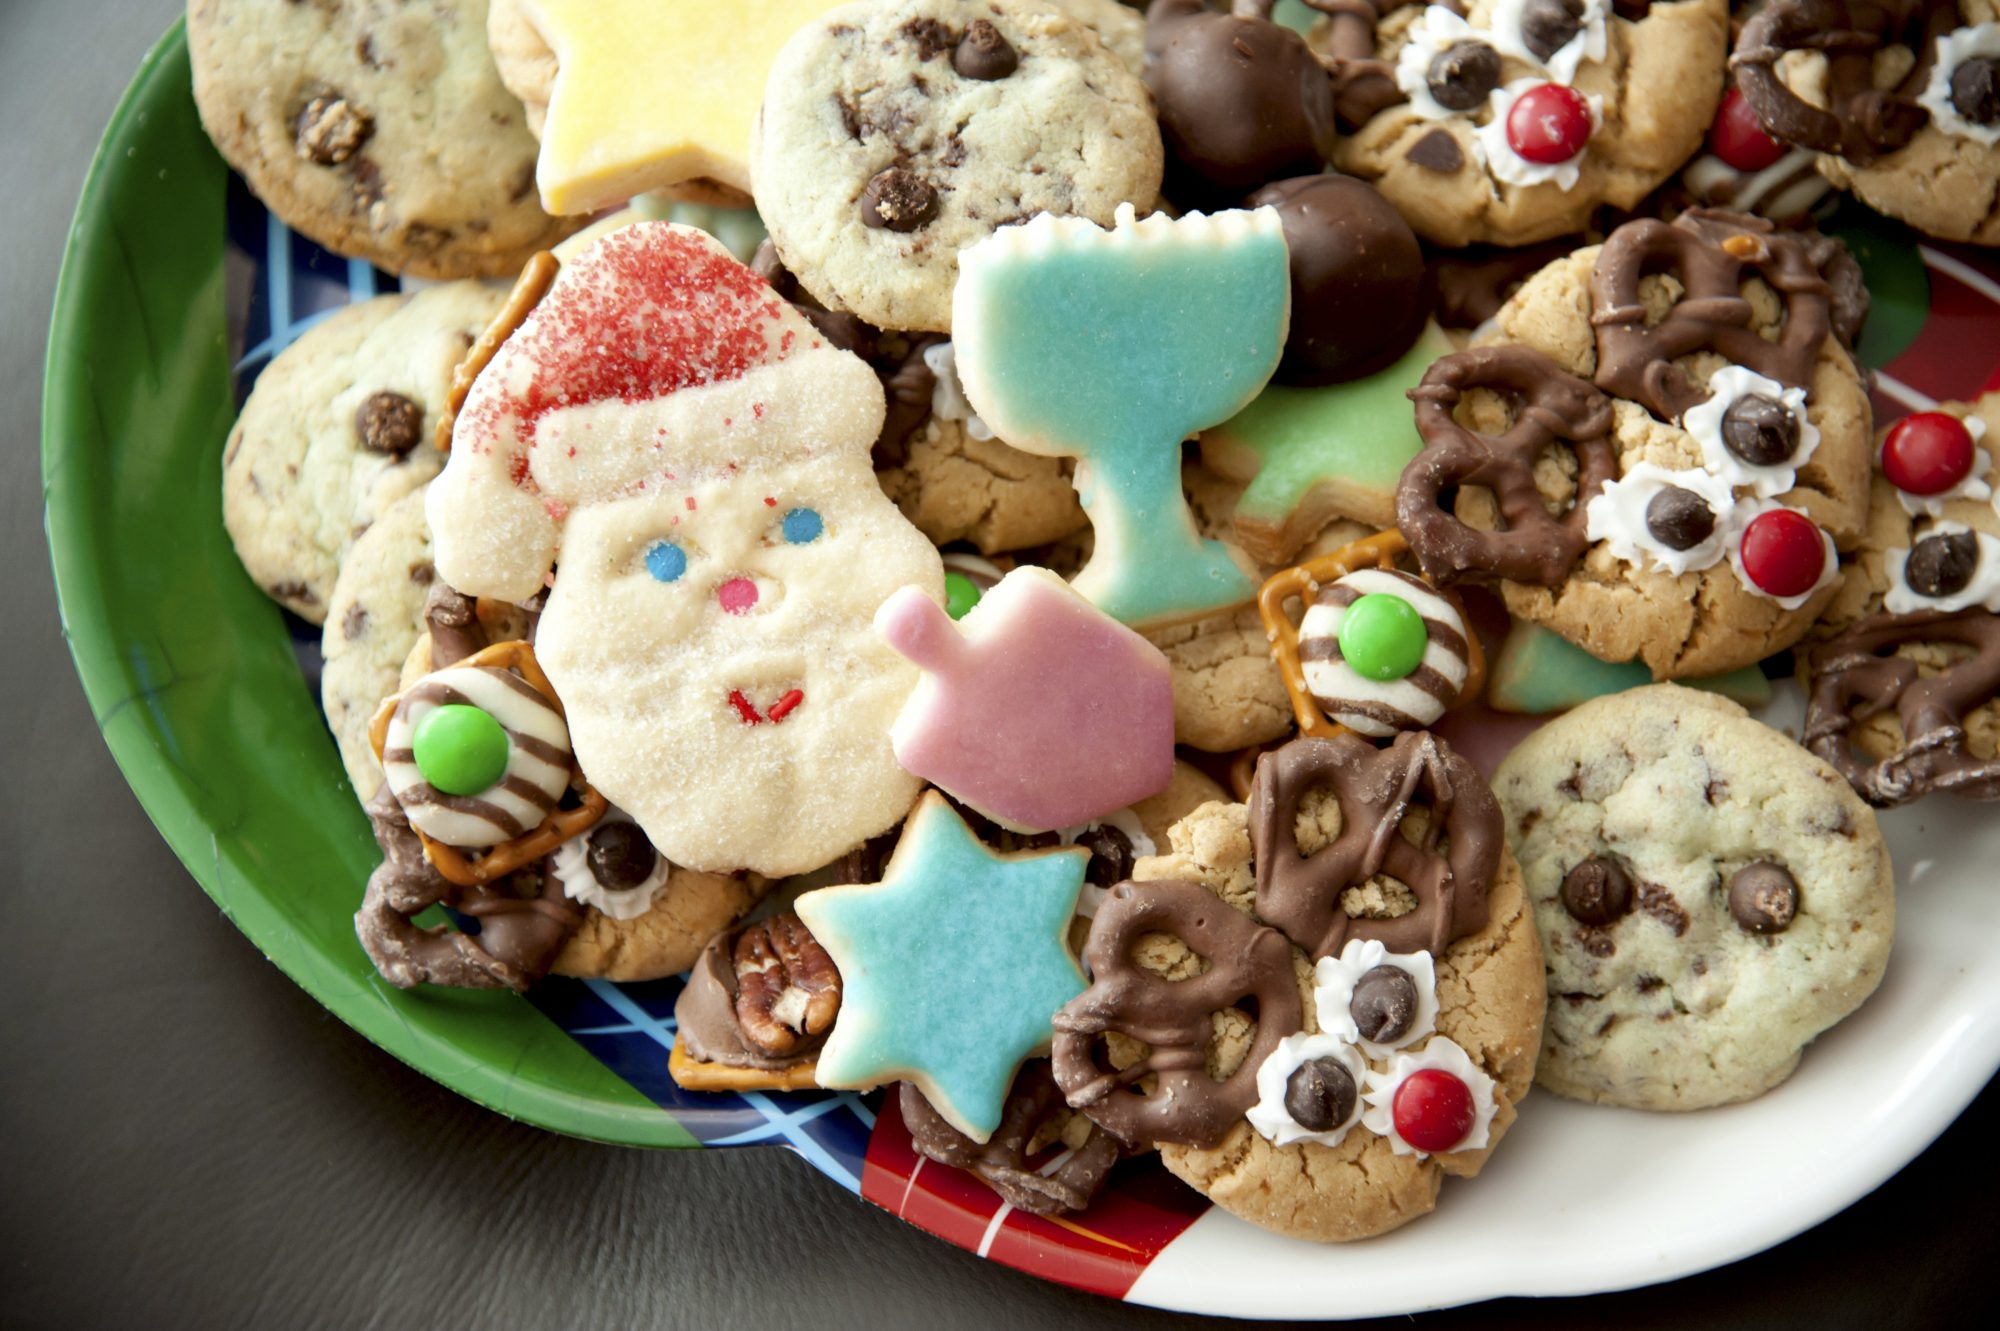 Plate of variety of holiday cookies